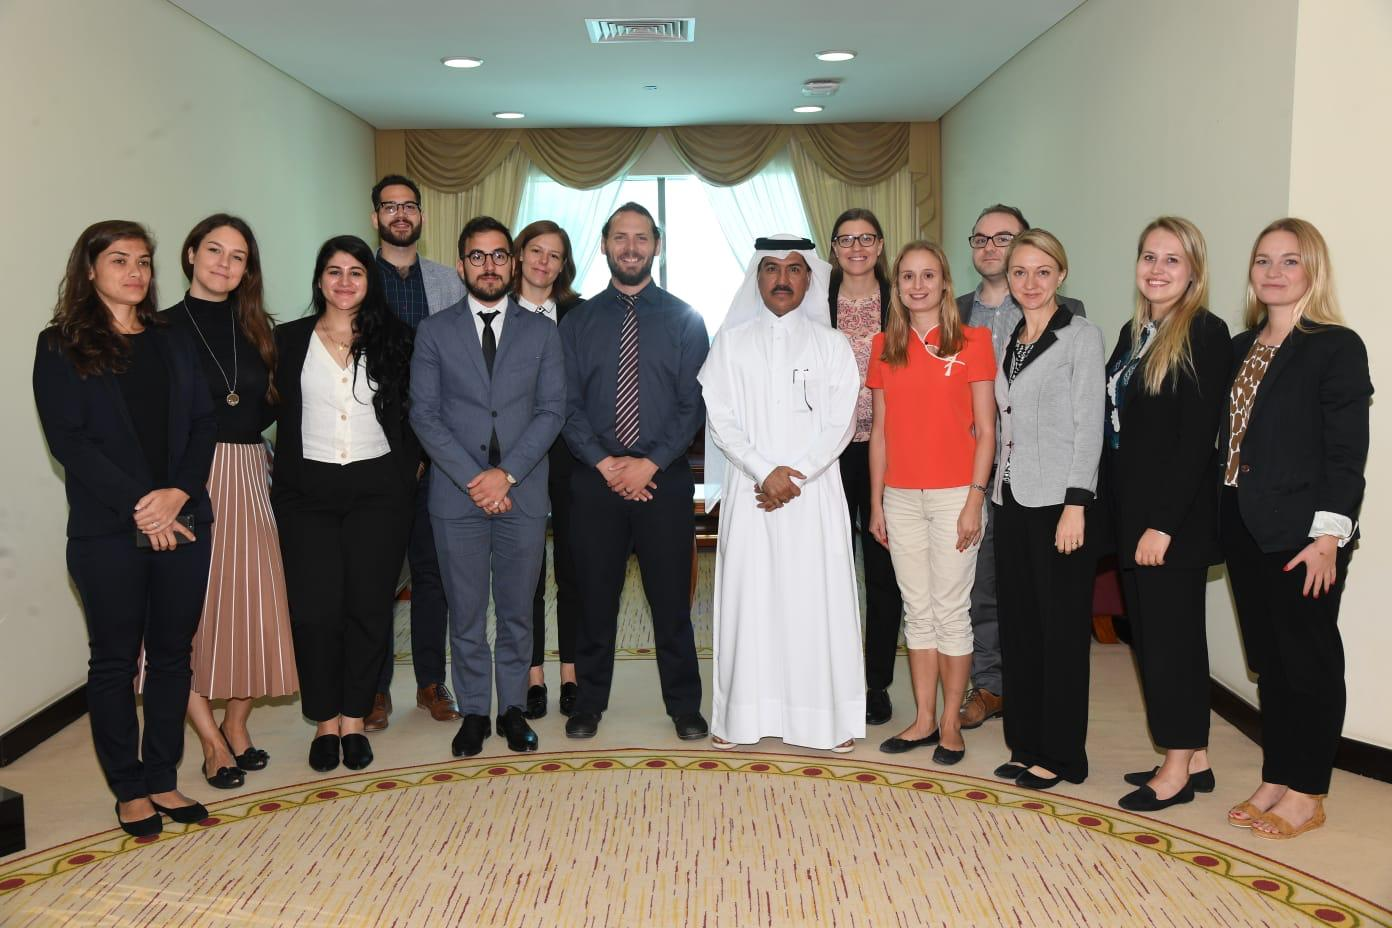 UN Alliance of Civilizations Delegation Concludes Successful Visit to Qatar